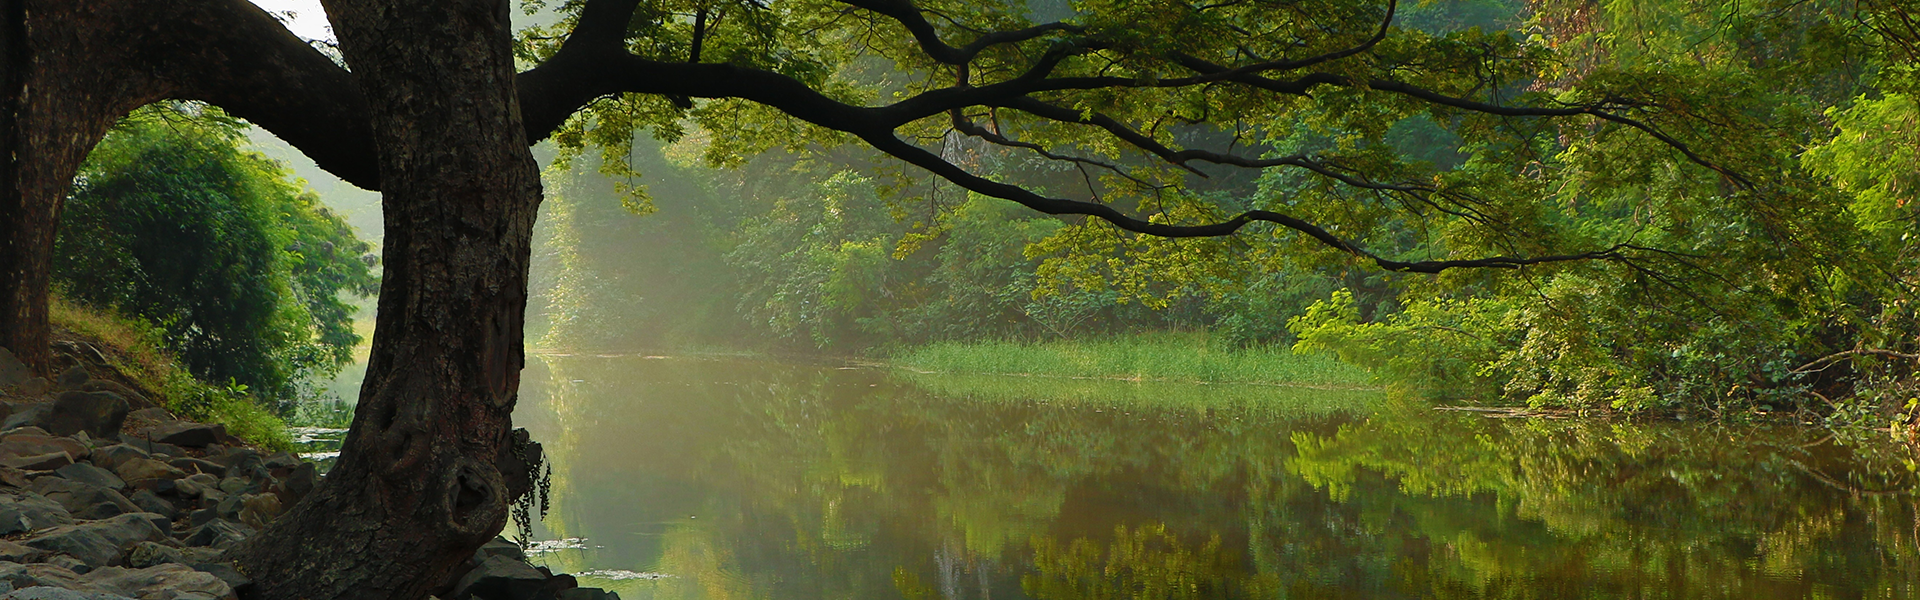 Large Tree standing over calm waters